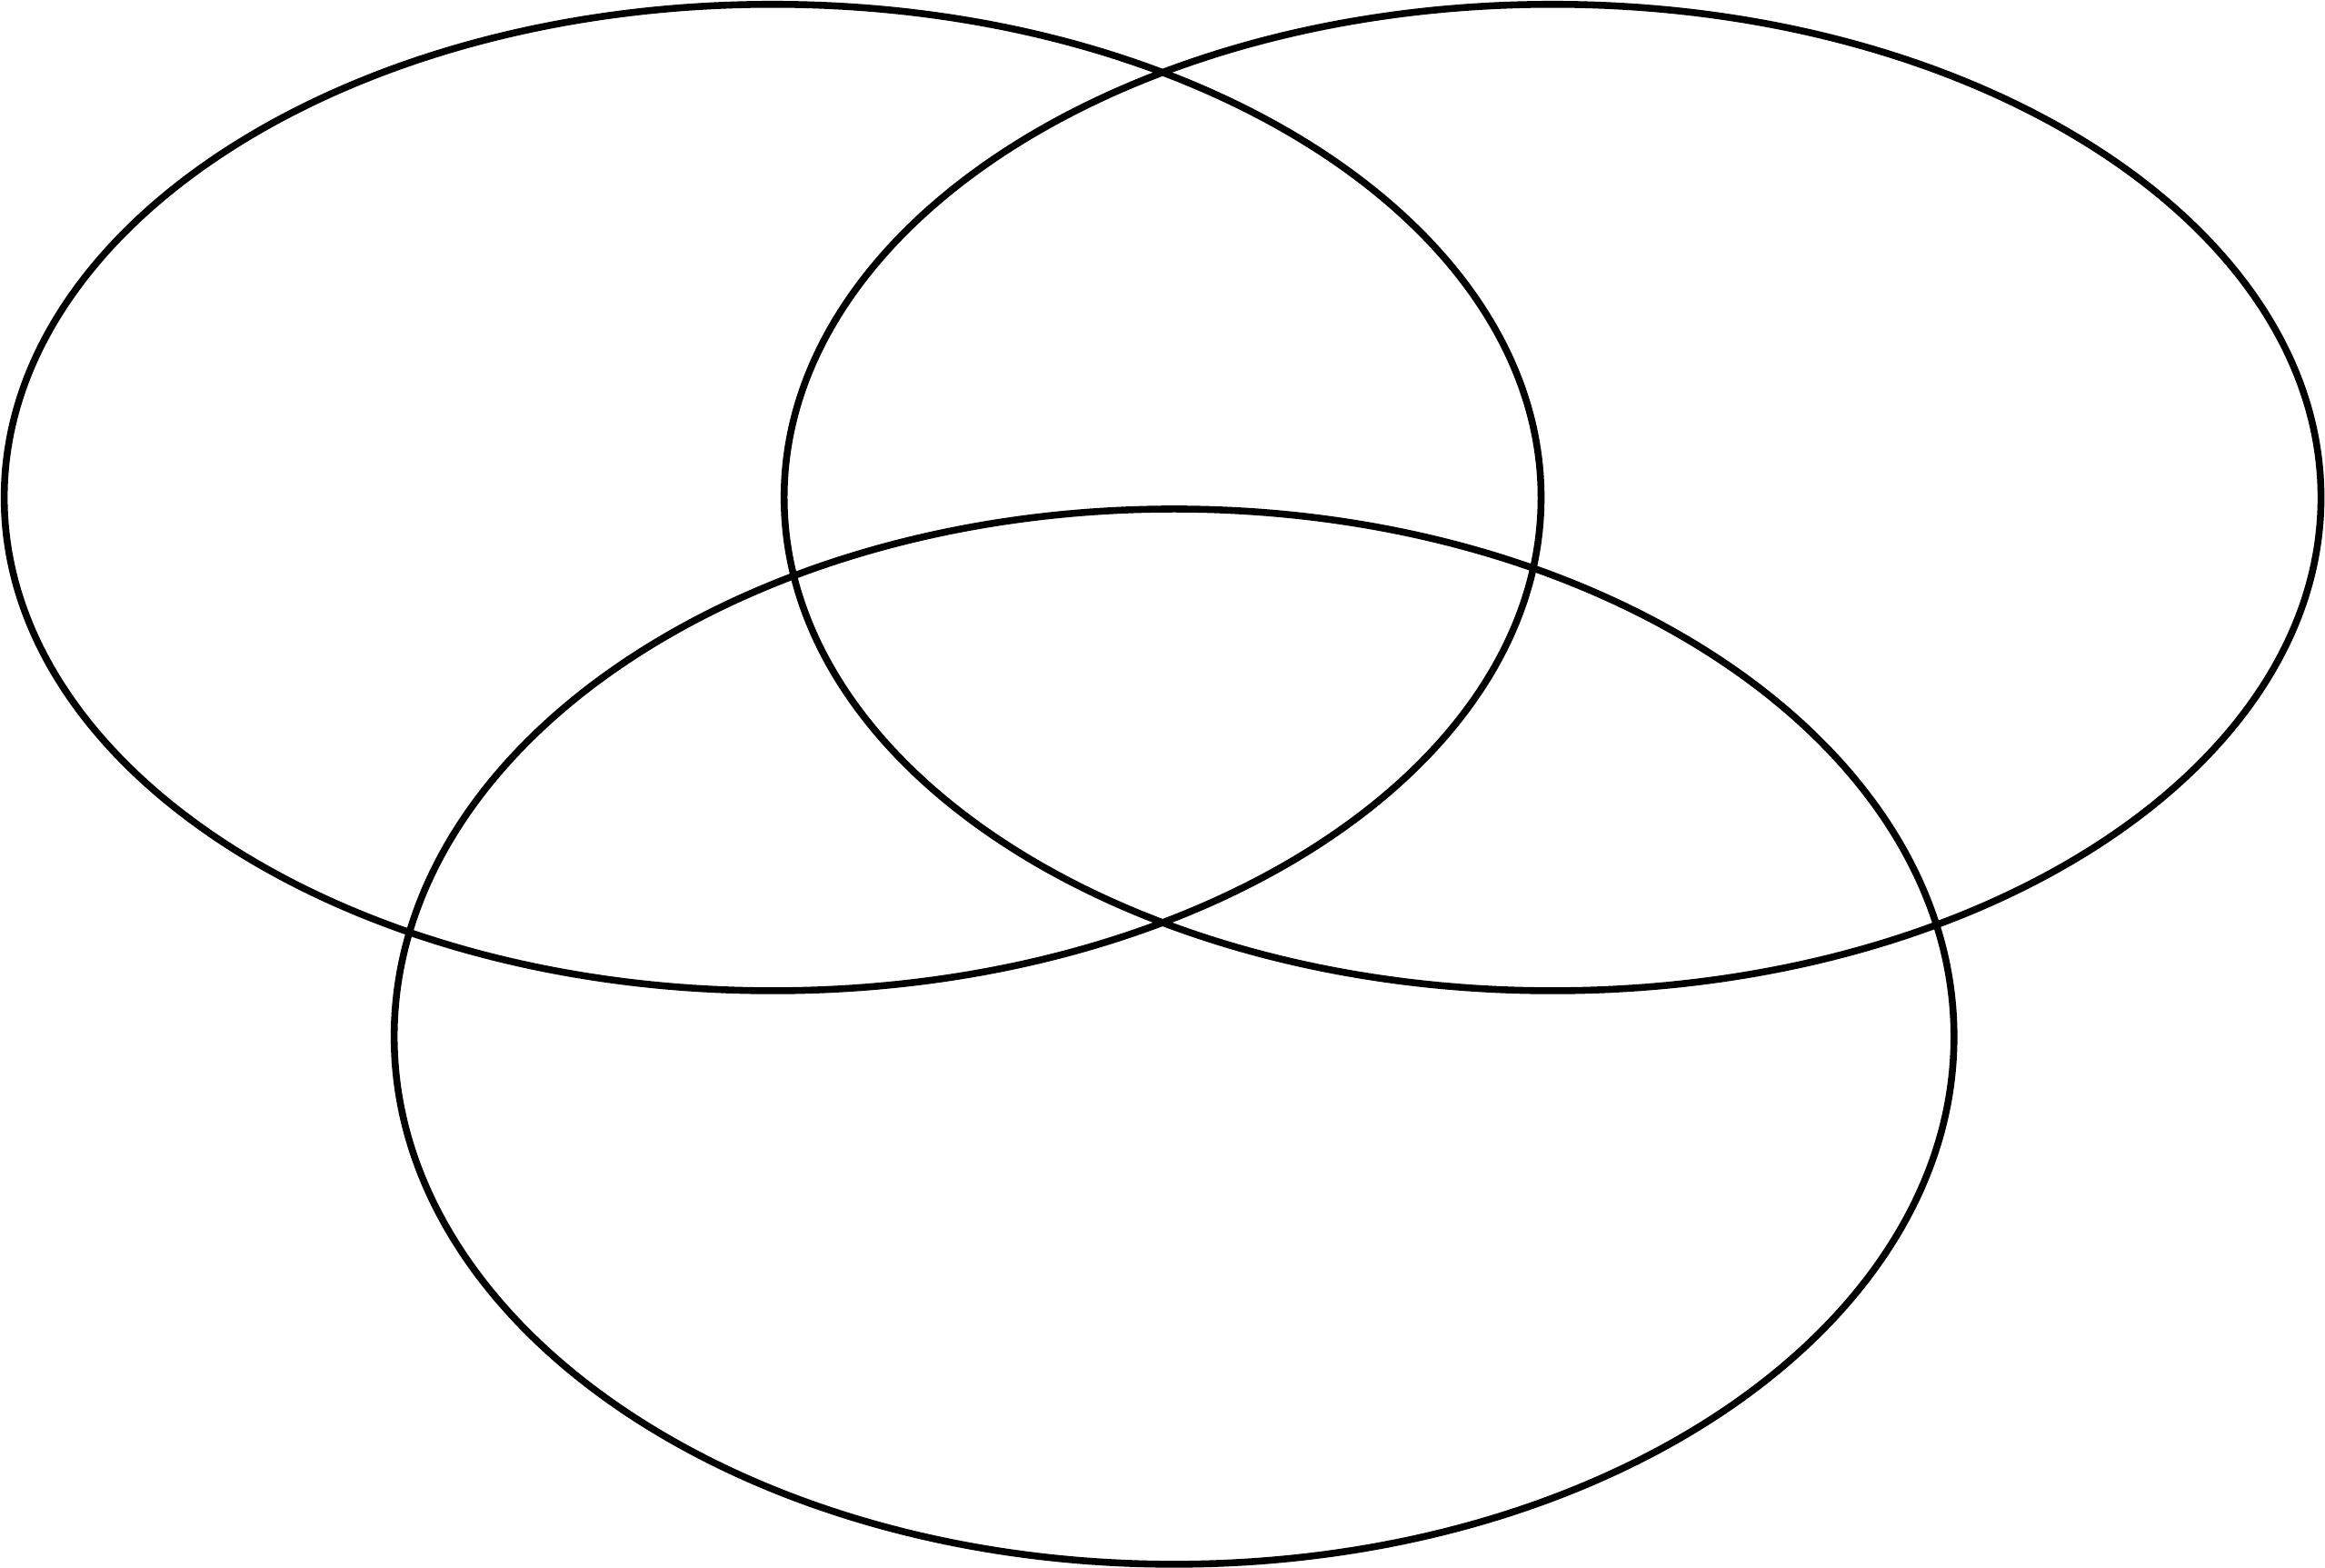 3 circle venn diagram generator